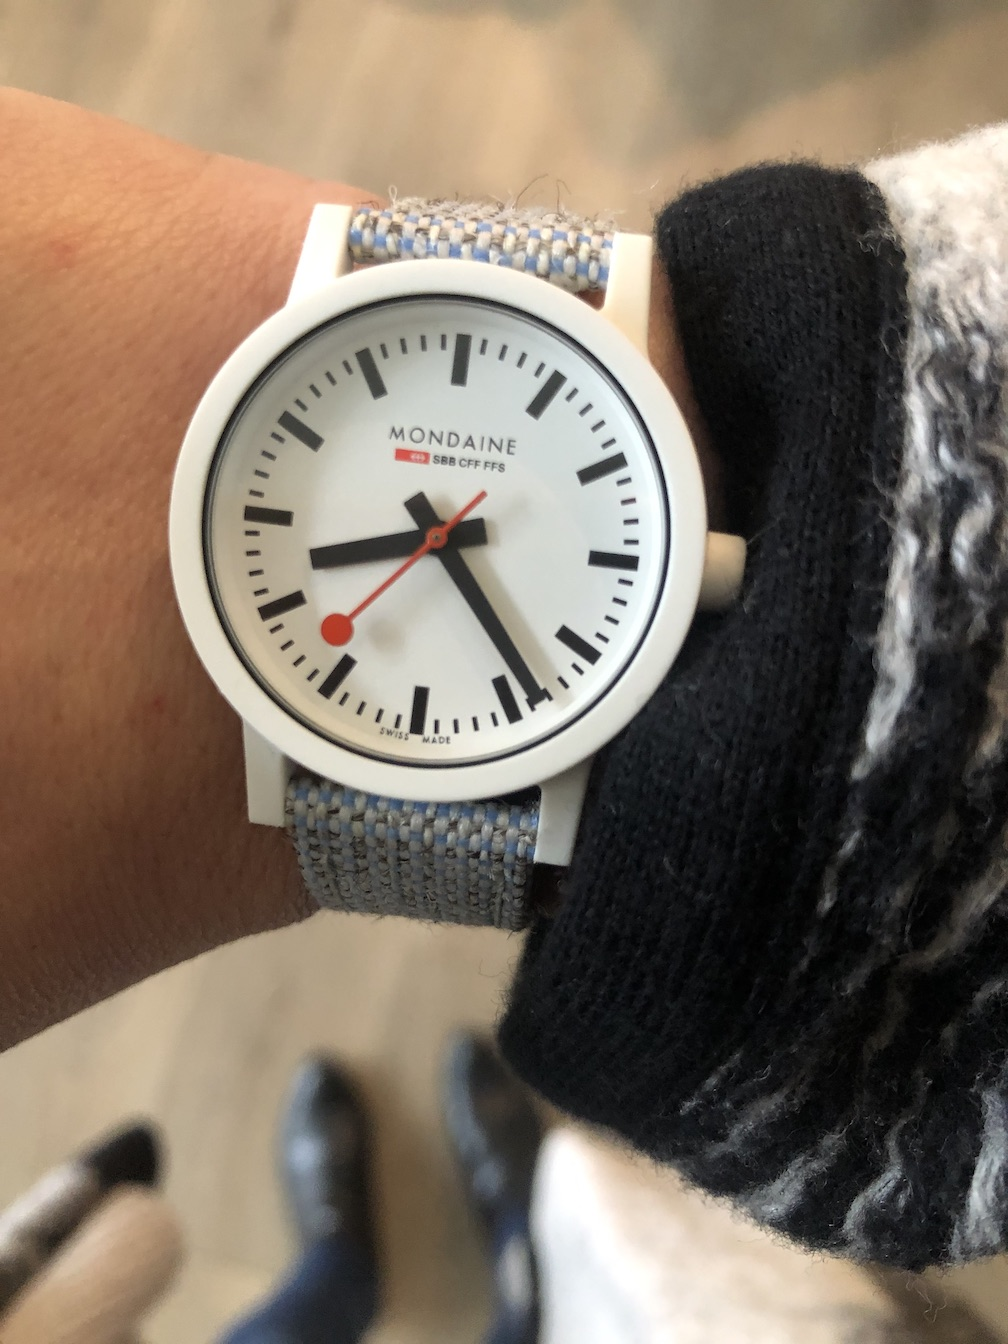 Mondaine sustainable Essence watch